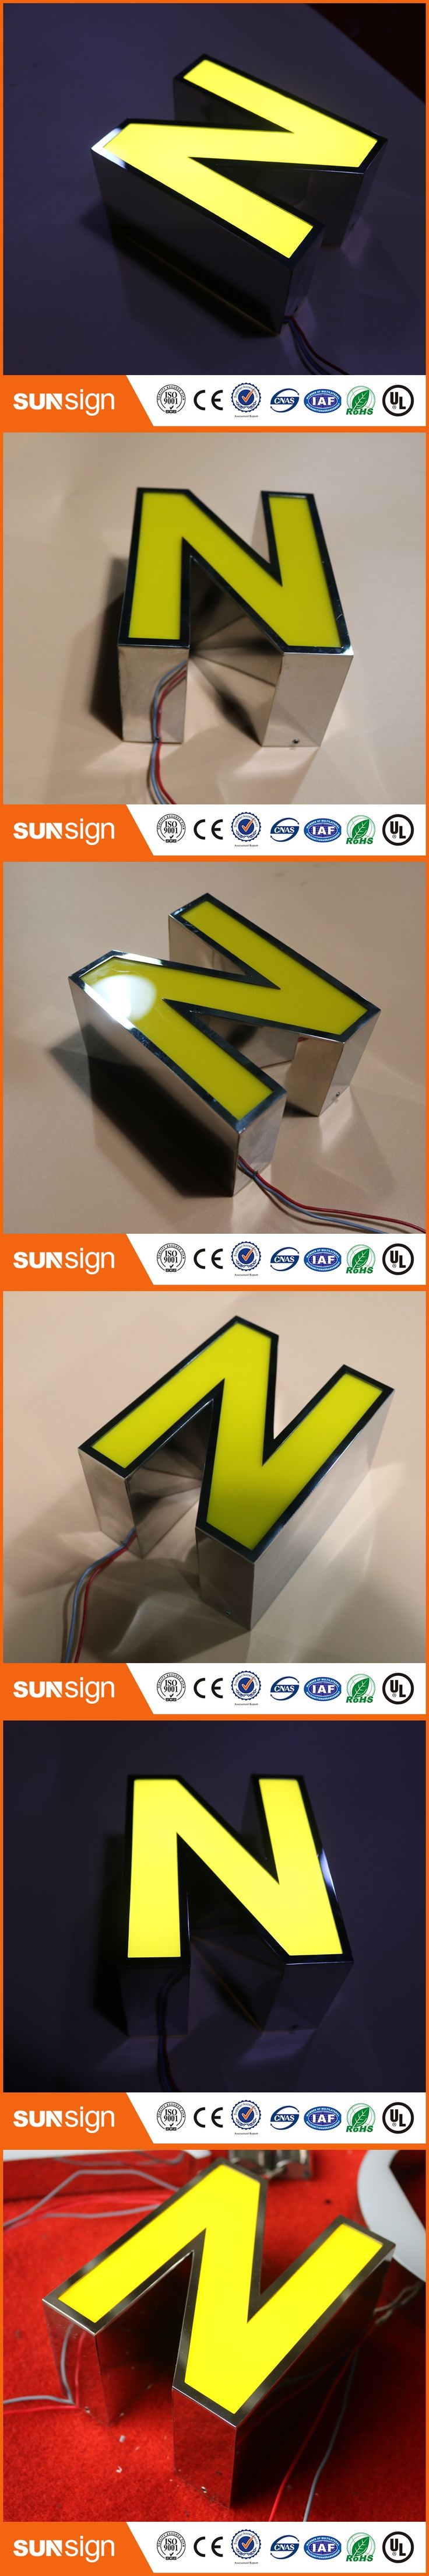 led sign mirror stainless steel logo Outdoor Led Sign 3D LED letters Acrylic letters